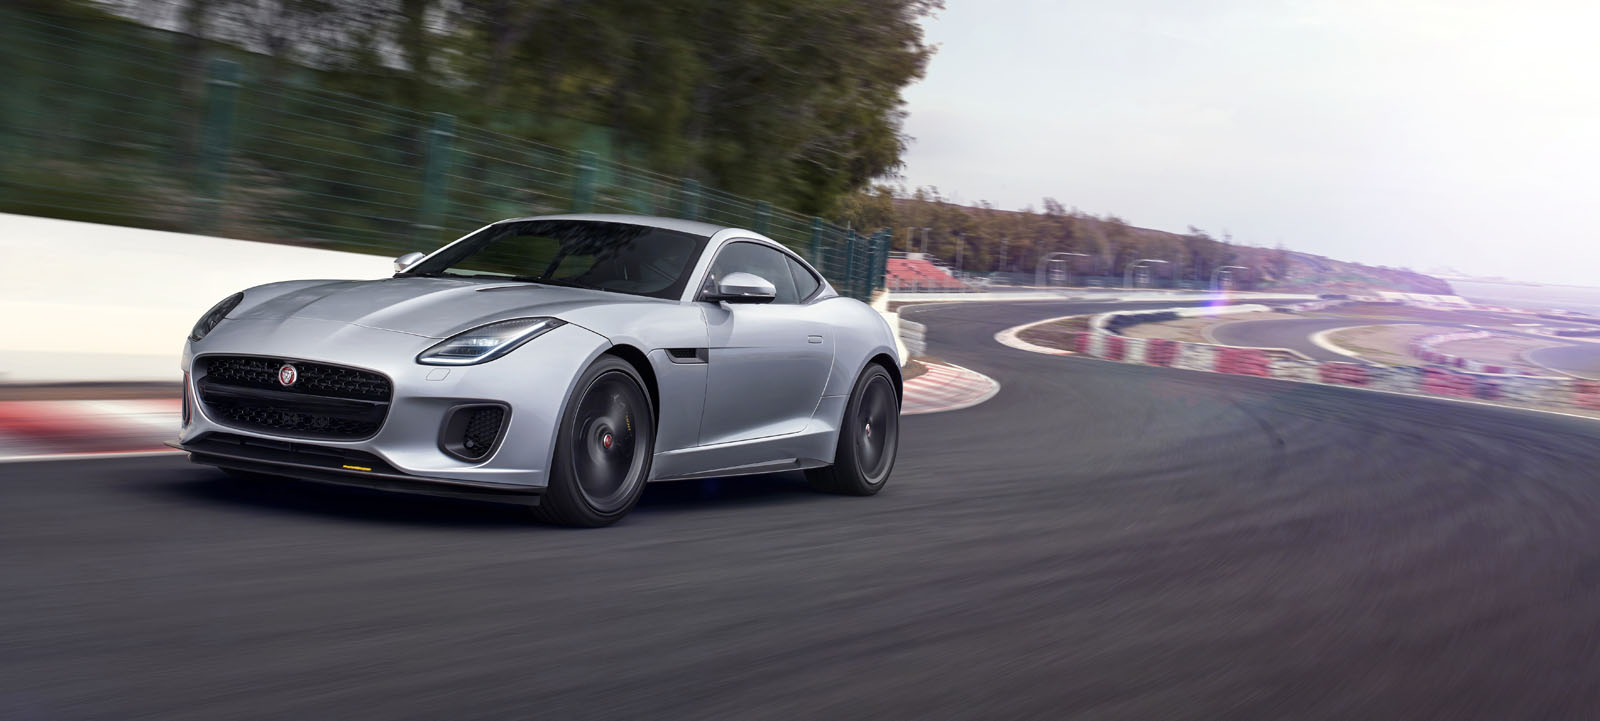 2018 jaguar f type refreshed with more tech and new models. Black Bedroom Furniture Sets. Home Design Ideas